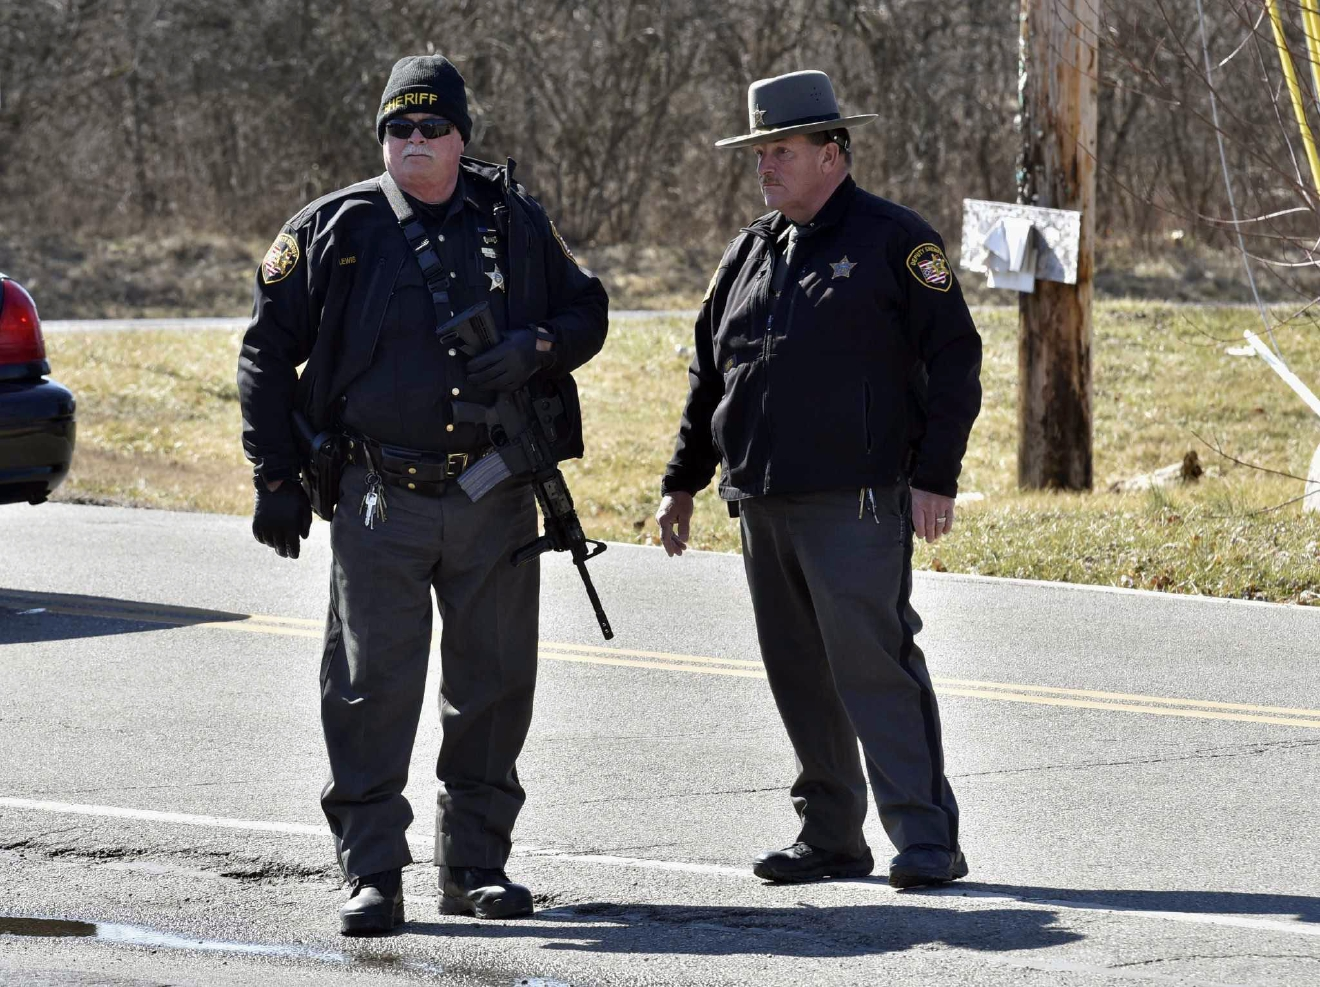 Deputies stand guard Monday, Feb. 29, 2016, near Middletown, Ohio after a school shooting at Madison Local Schools.  An Ohio sheriff says a 14-year-old suspect in a school shooting that wounded four classmates, including two who were shot, is in a juvenile lock-up and facing several charges. Butler County Sheriff Richard Jones says the boy has been charged with two counts of attempted murder, two counts of felonious assault, inducing panic and making terrorist threats.  (Nick Graham/Dayton Daily News via AP)